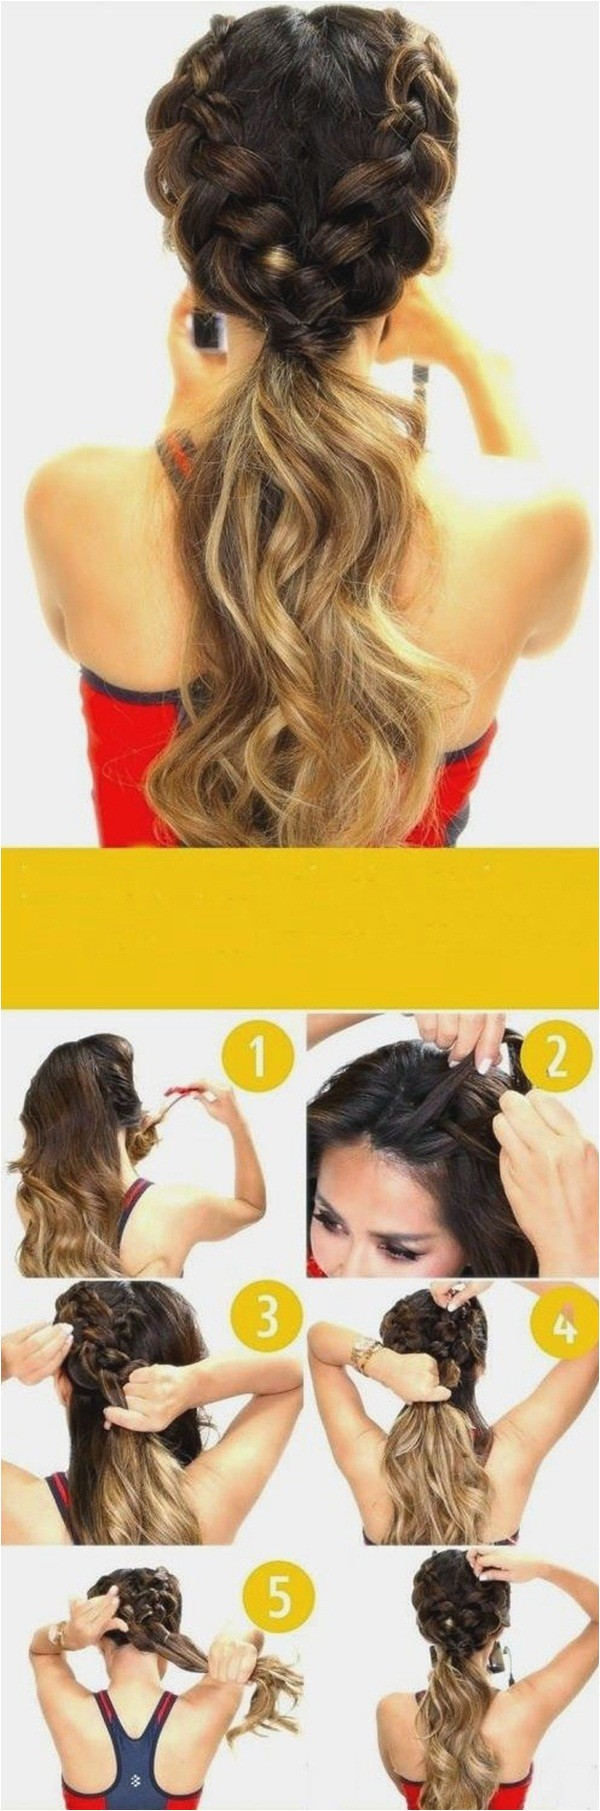 New and Easy Hairstyles for School 40 Easy Hairstyles for Schools to Try In 2016